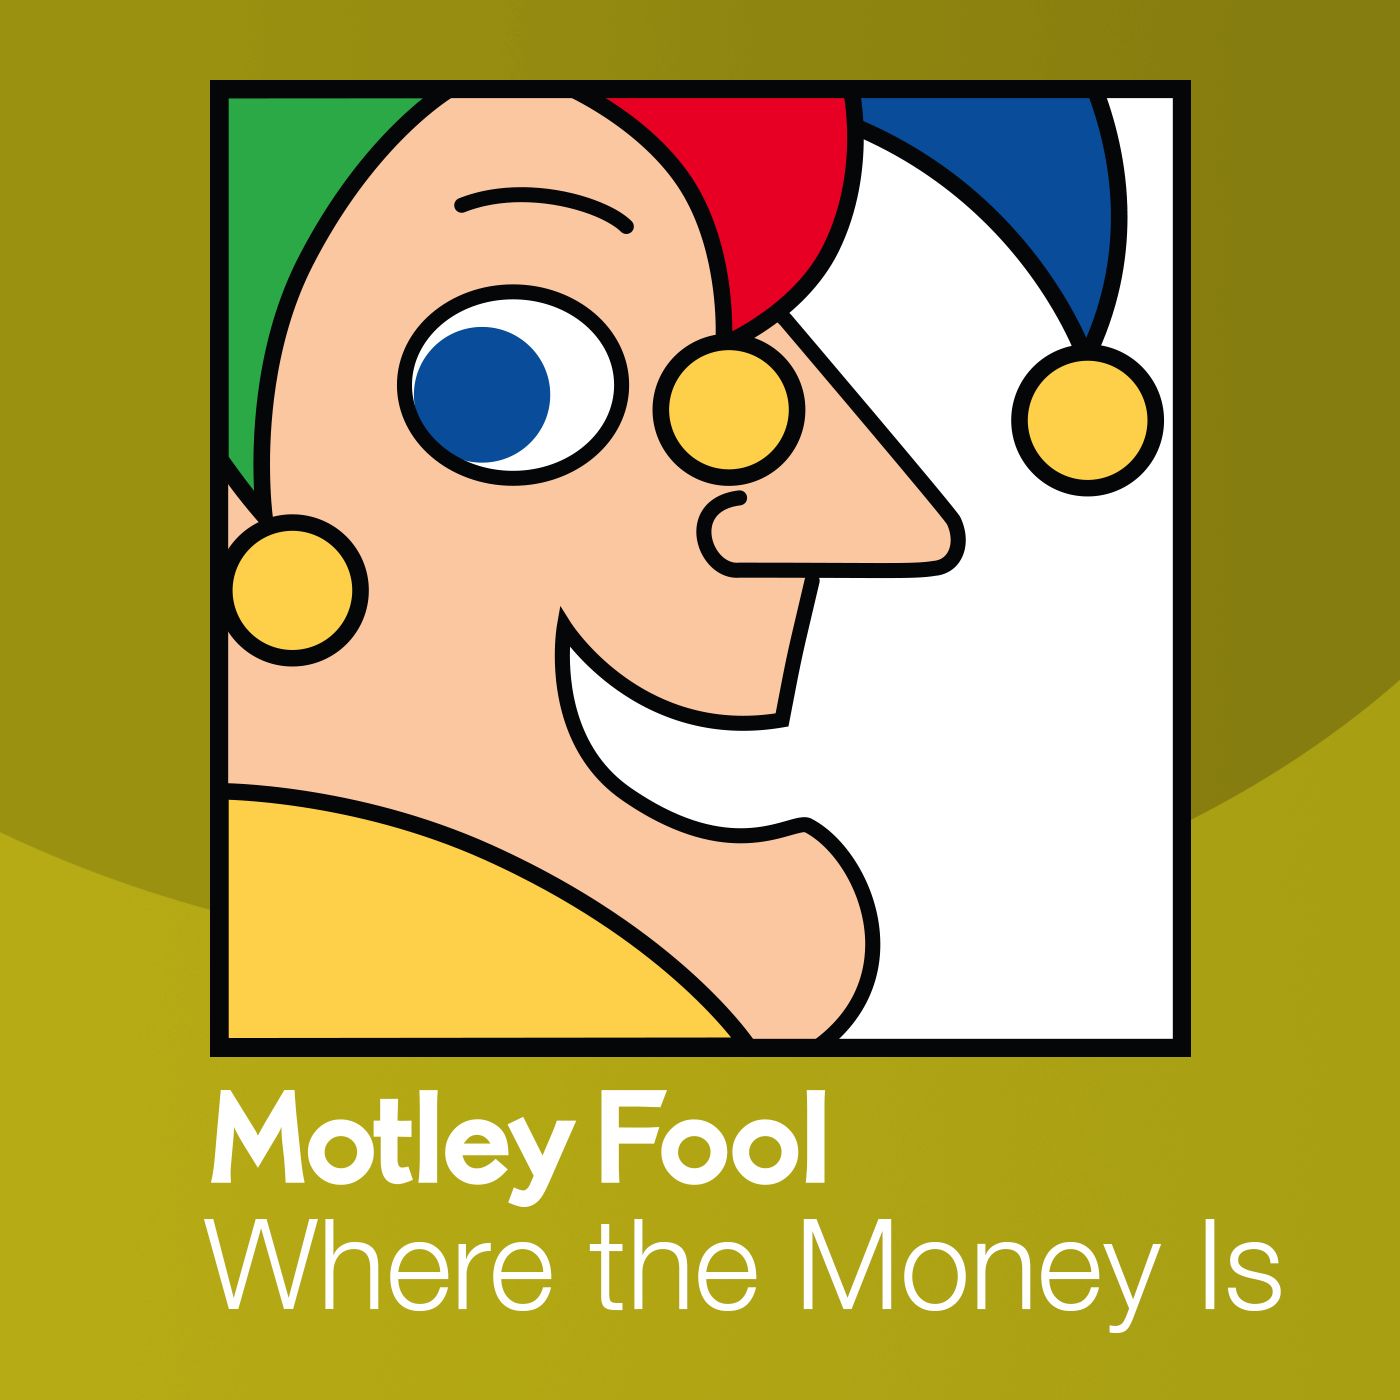 Where the Money Is 04.04.14